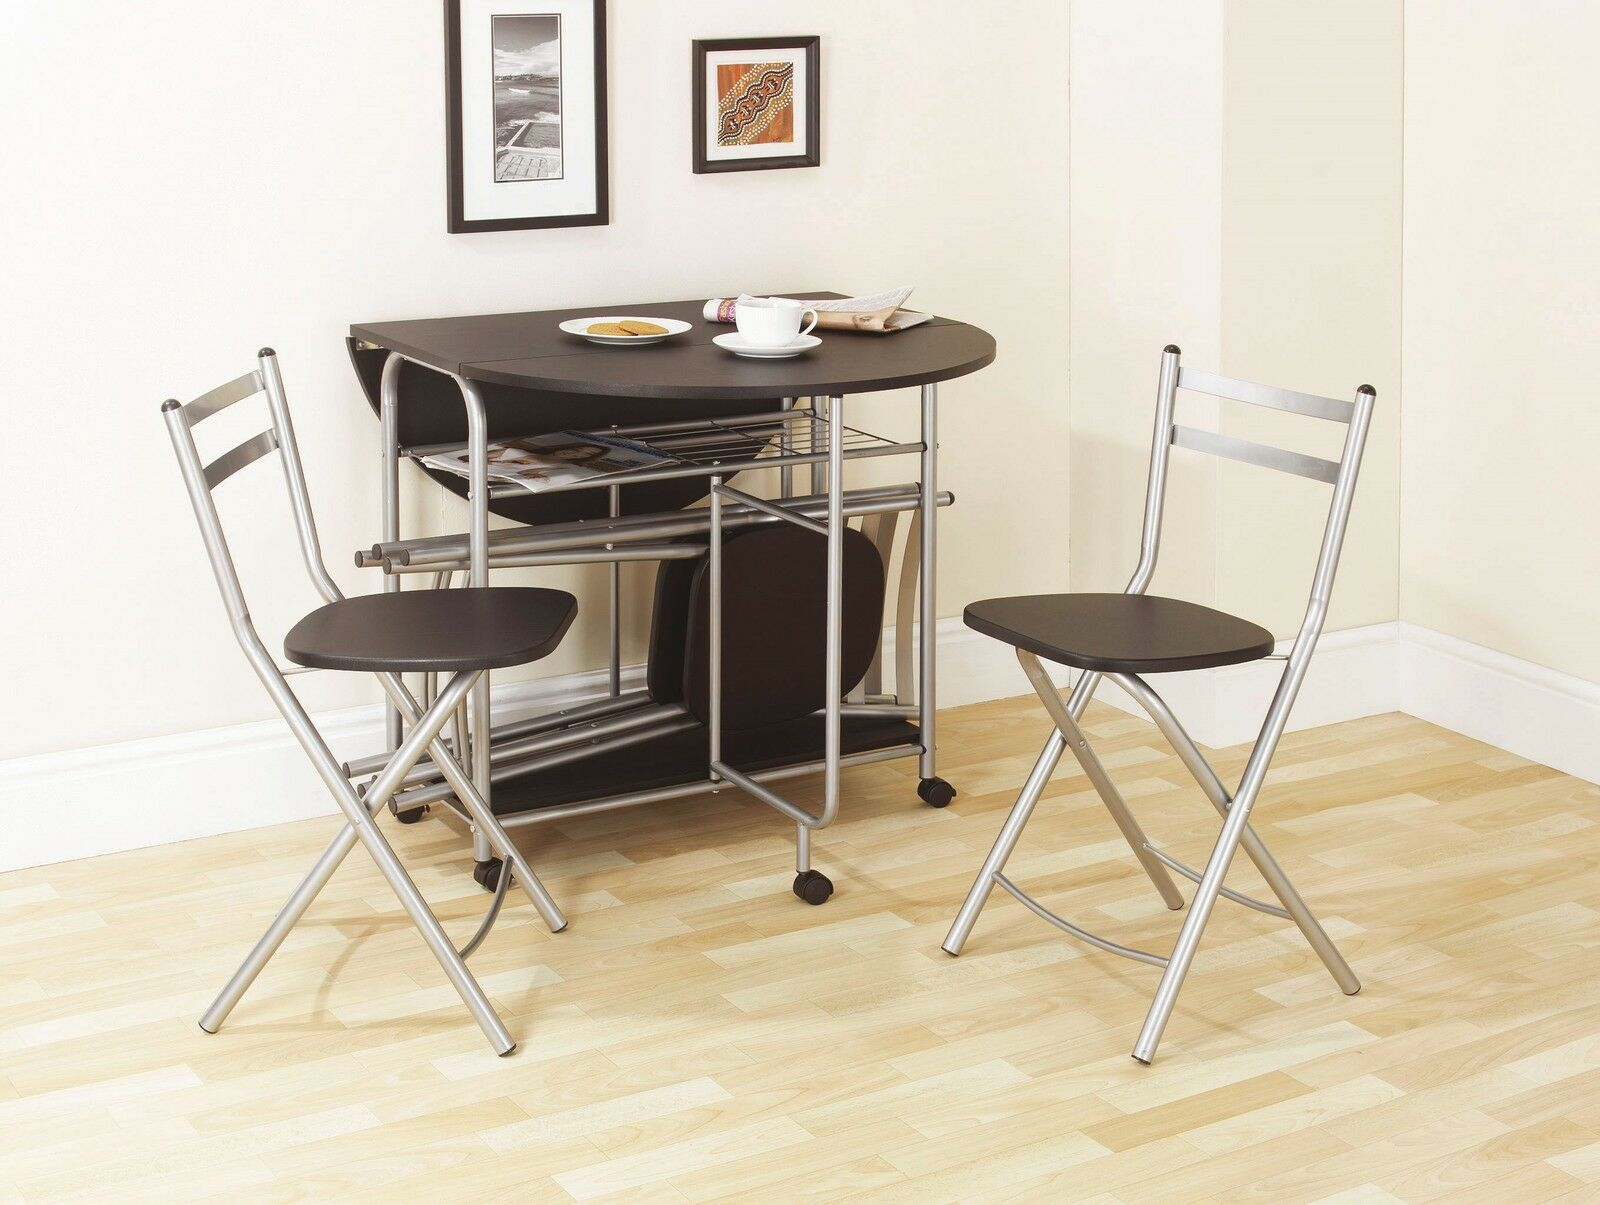 black folding table and chairs set tantra chair dimensions width dining four